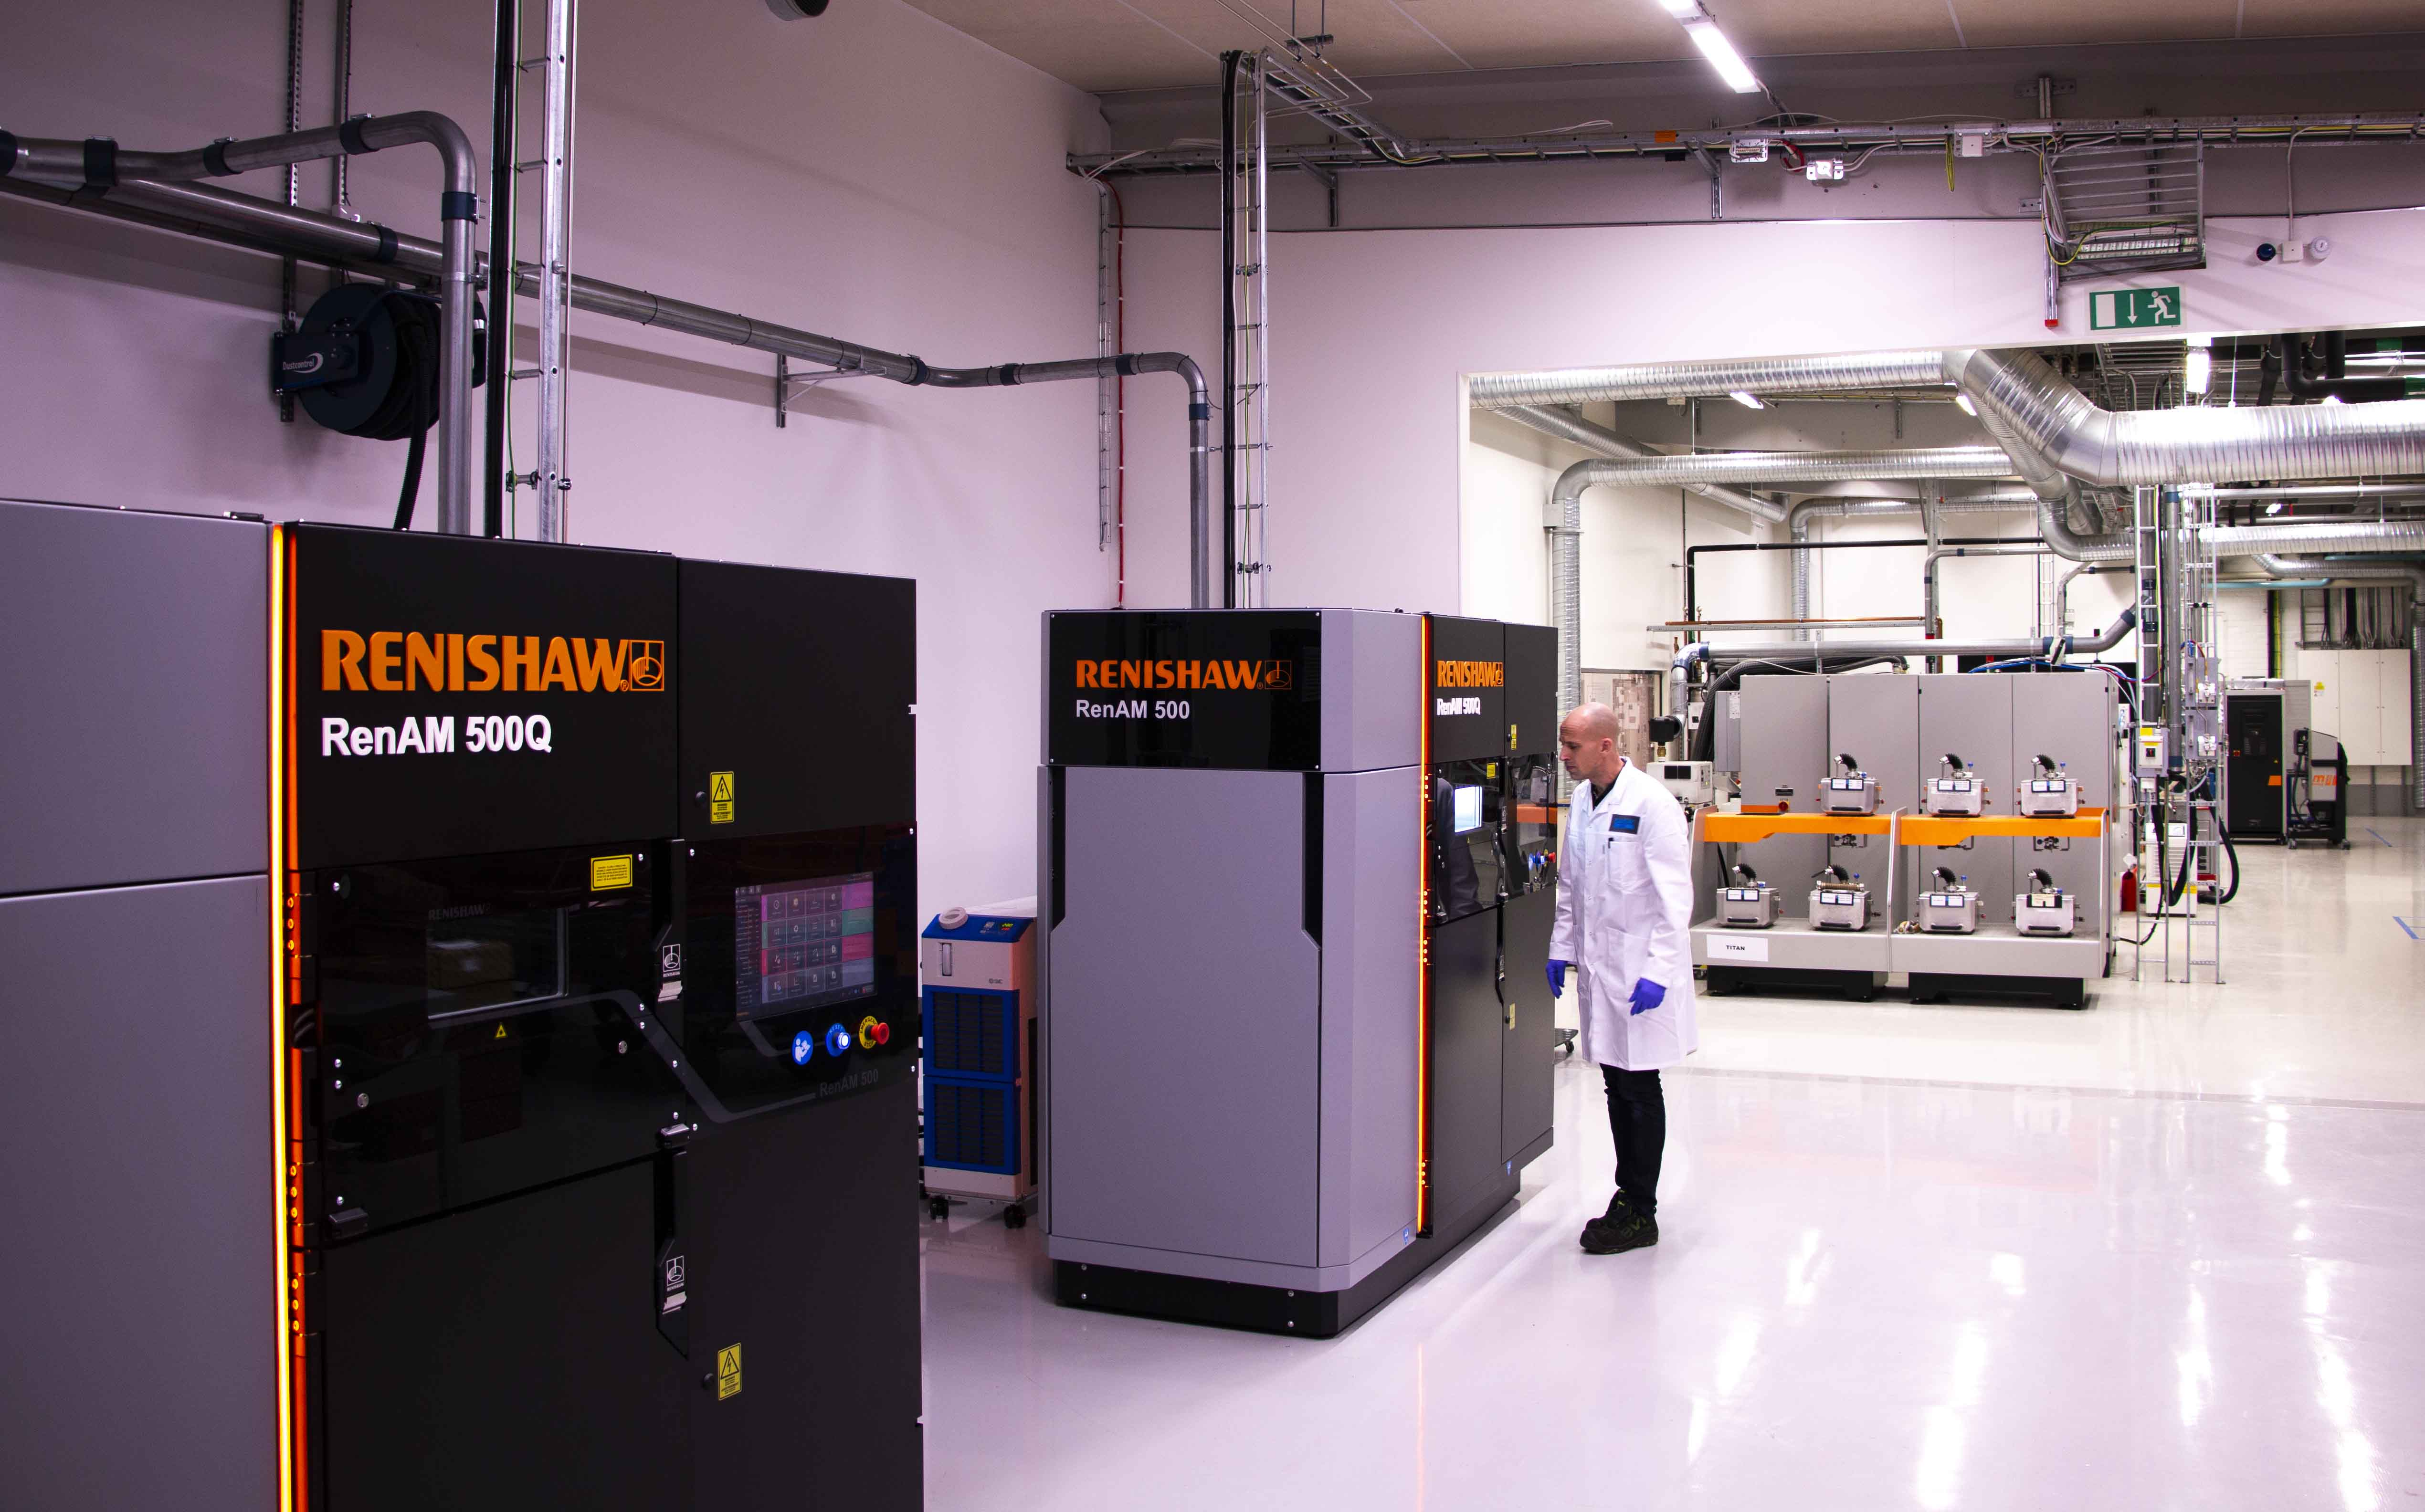 RENISHAW and Sandvik power the future of metal Additive Manufacturing